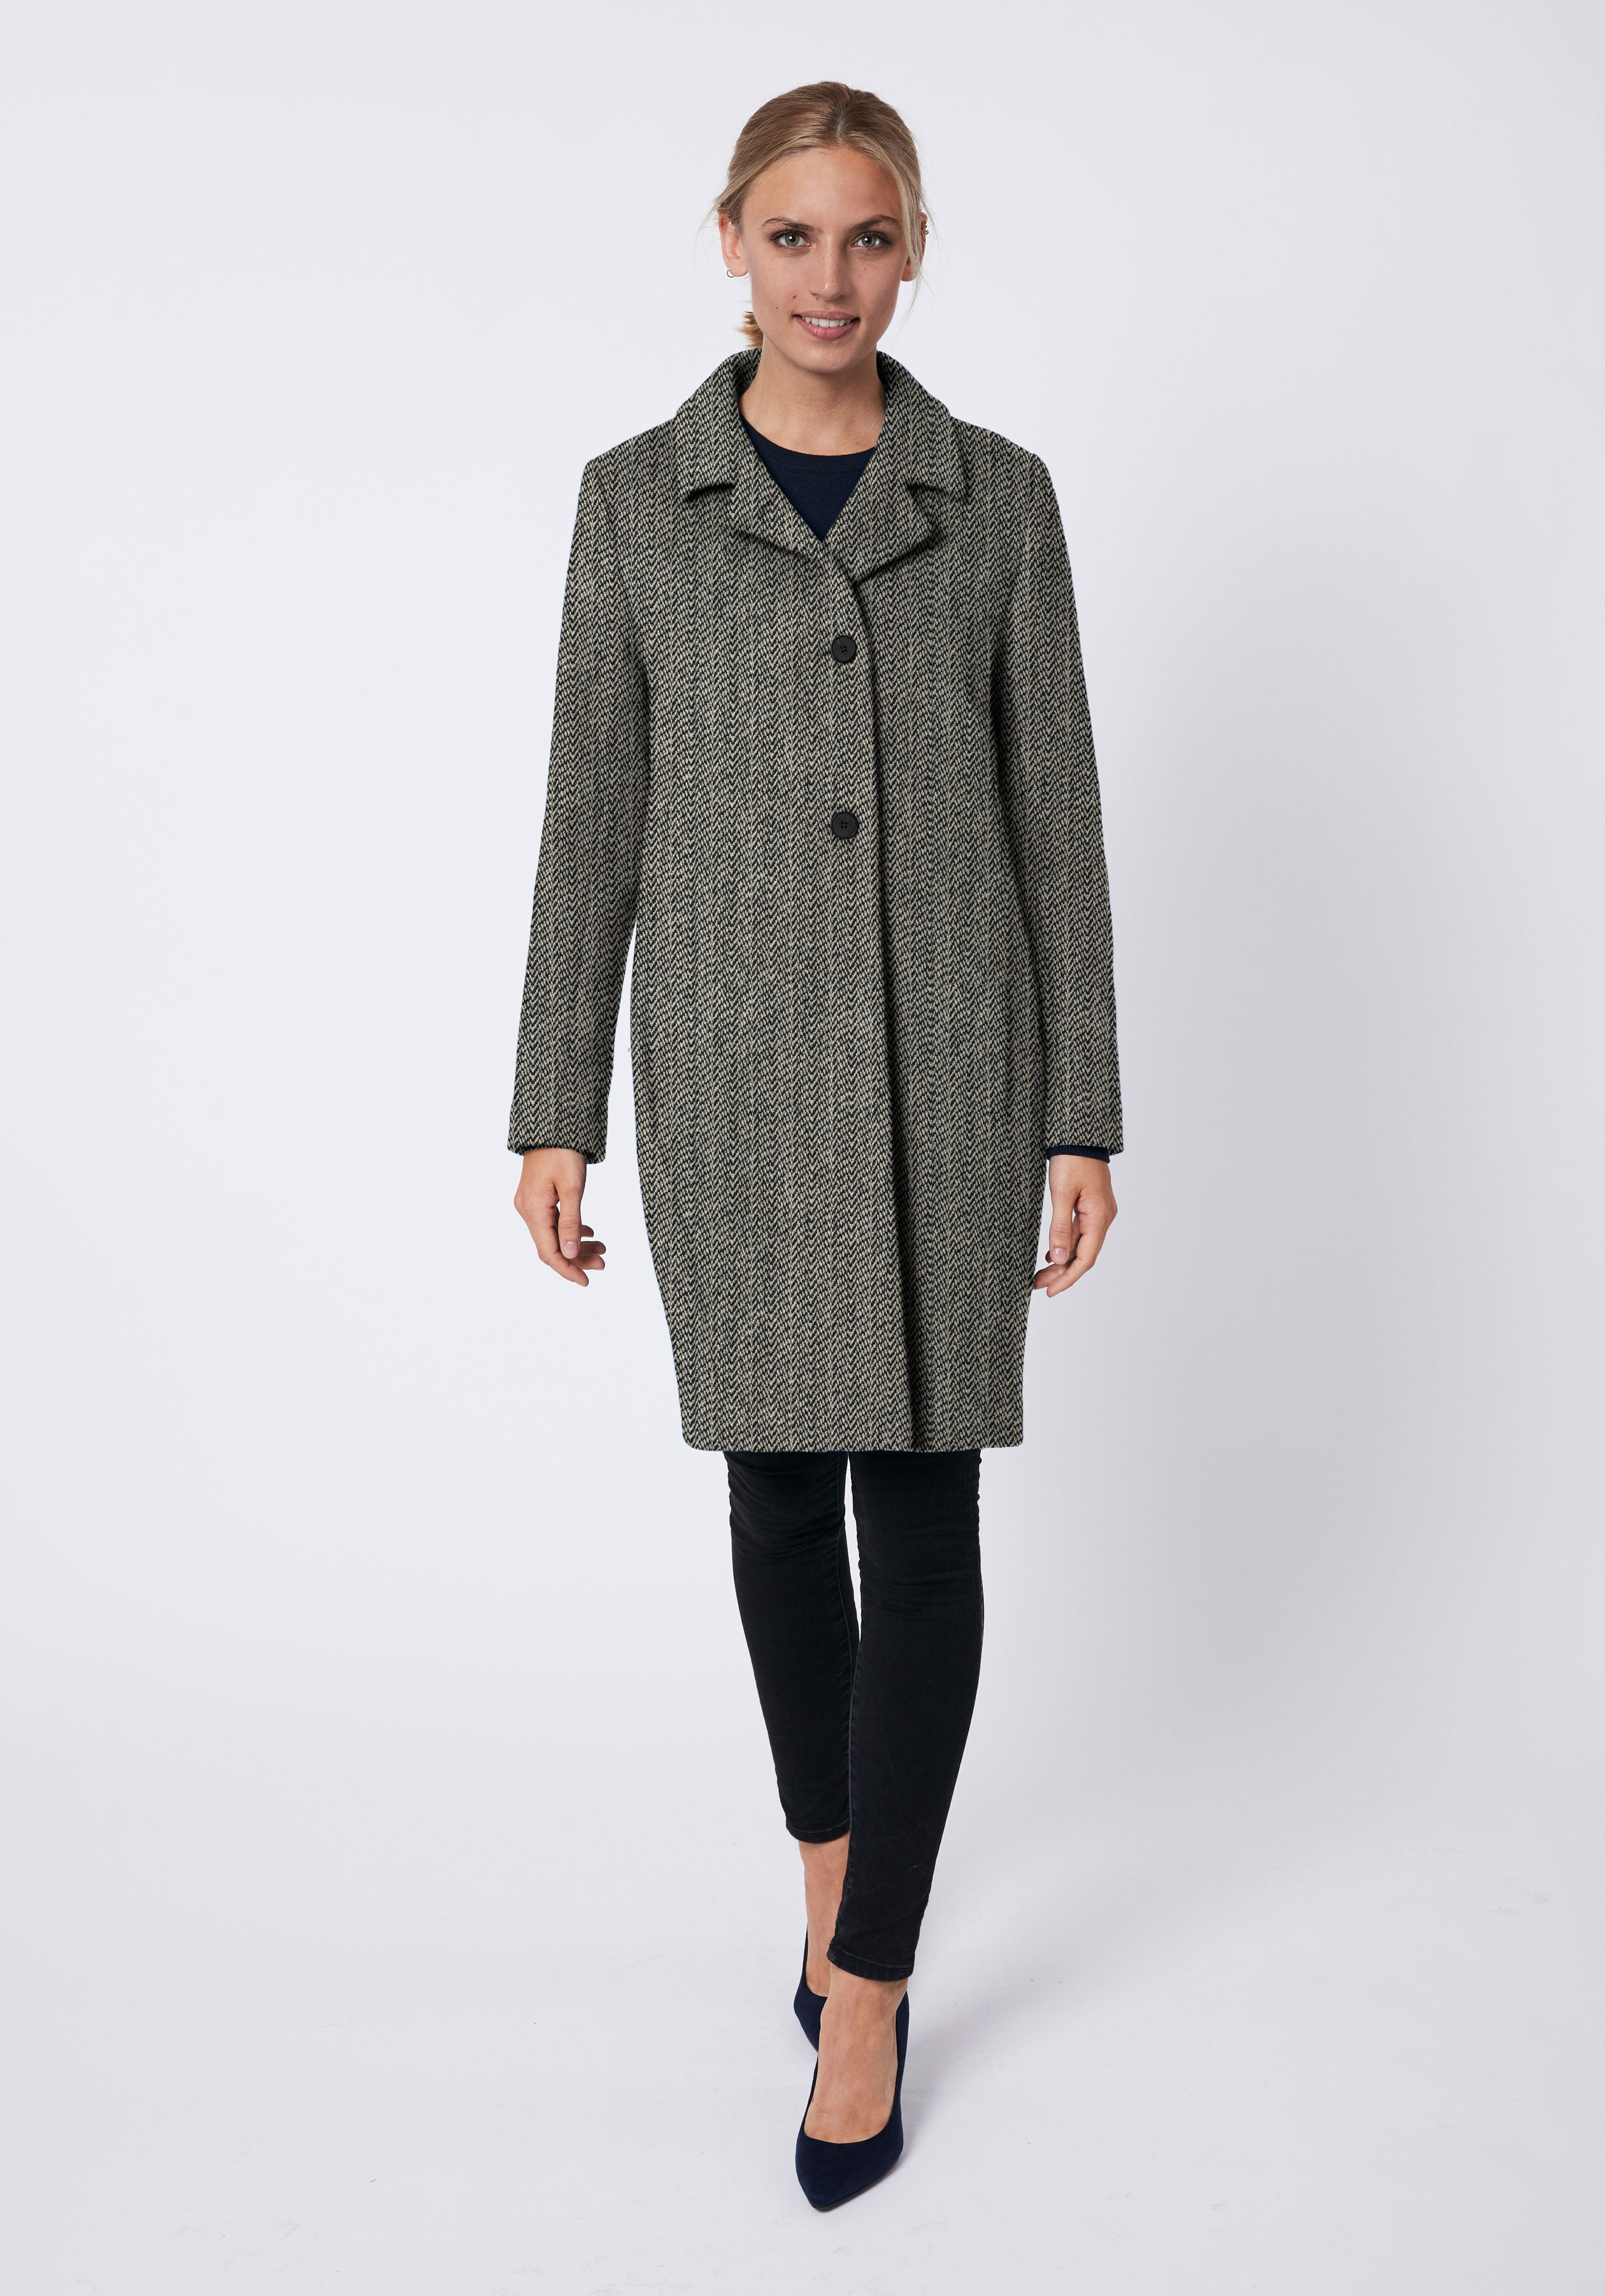 Jackson Coat in Black & Cream Broken Herringbone